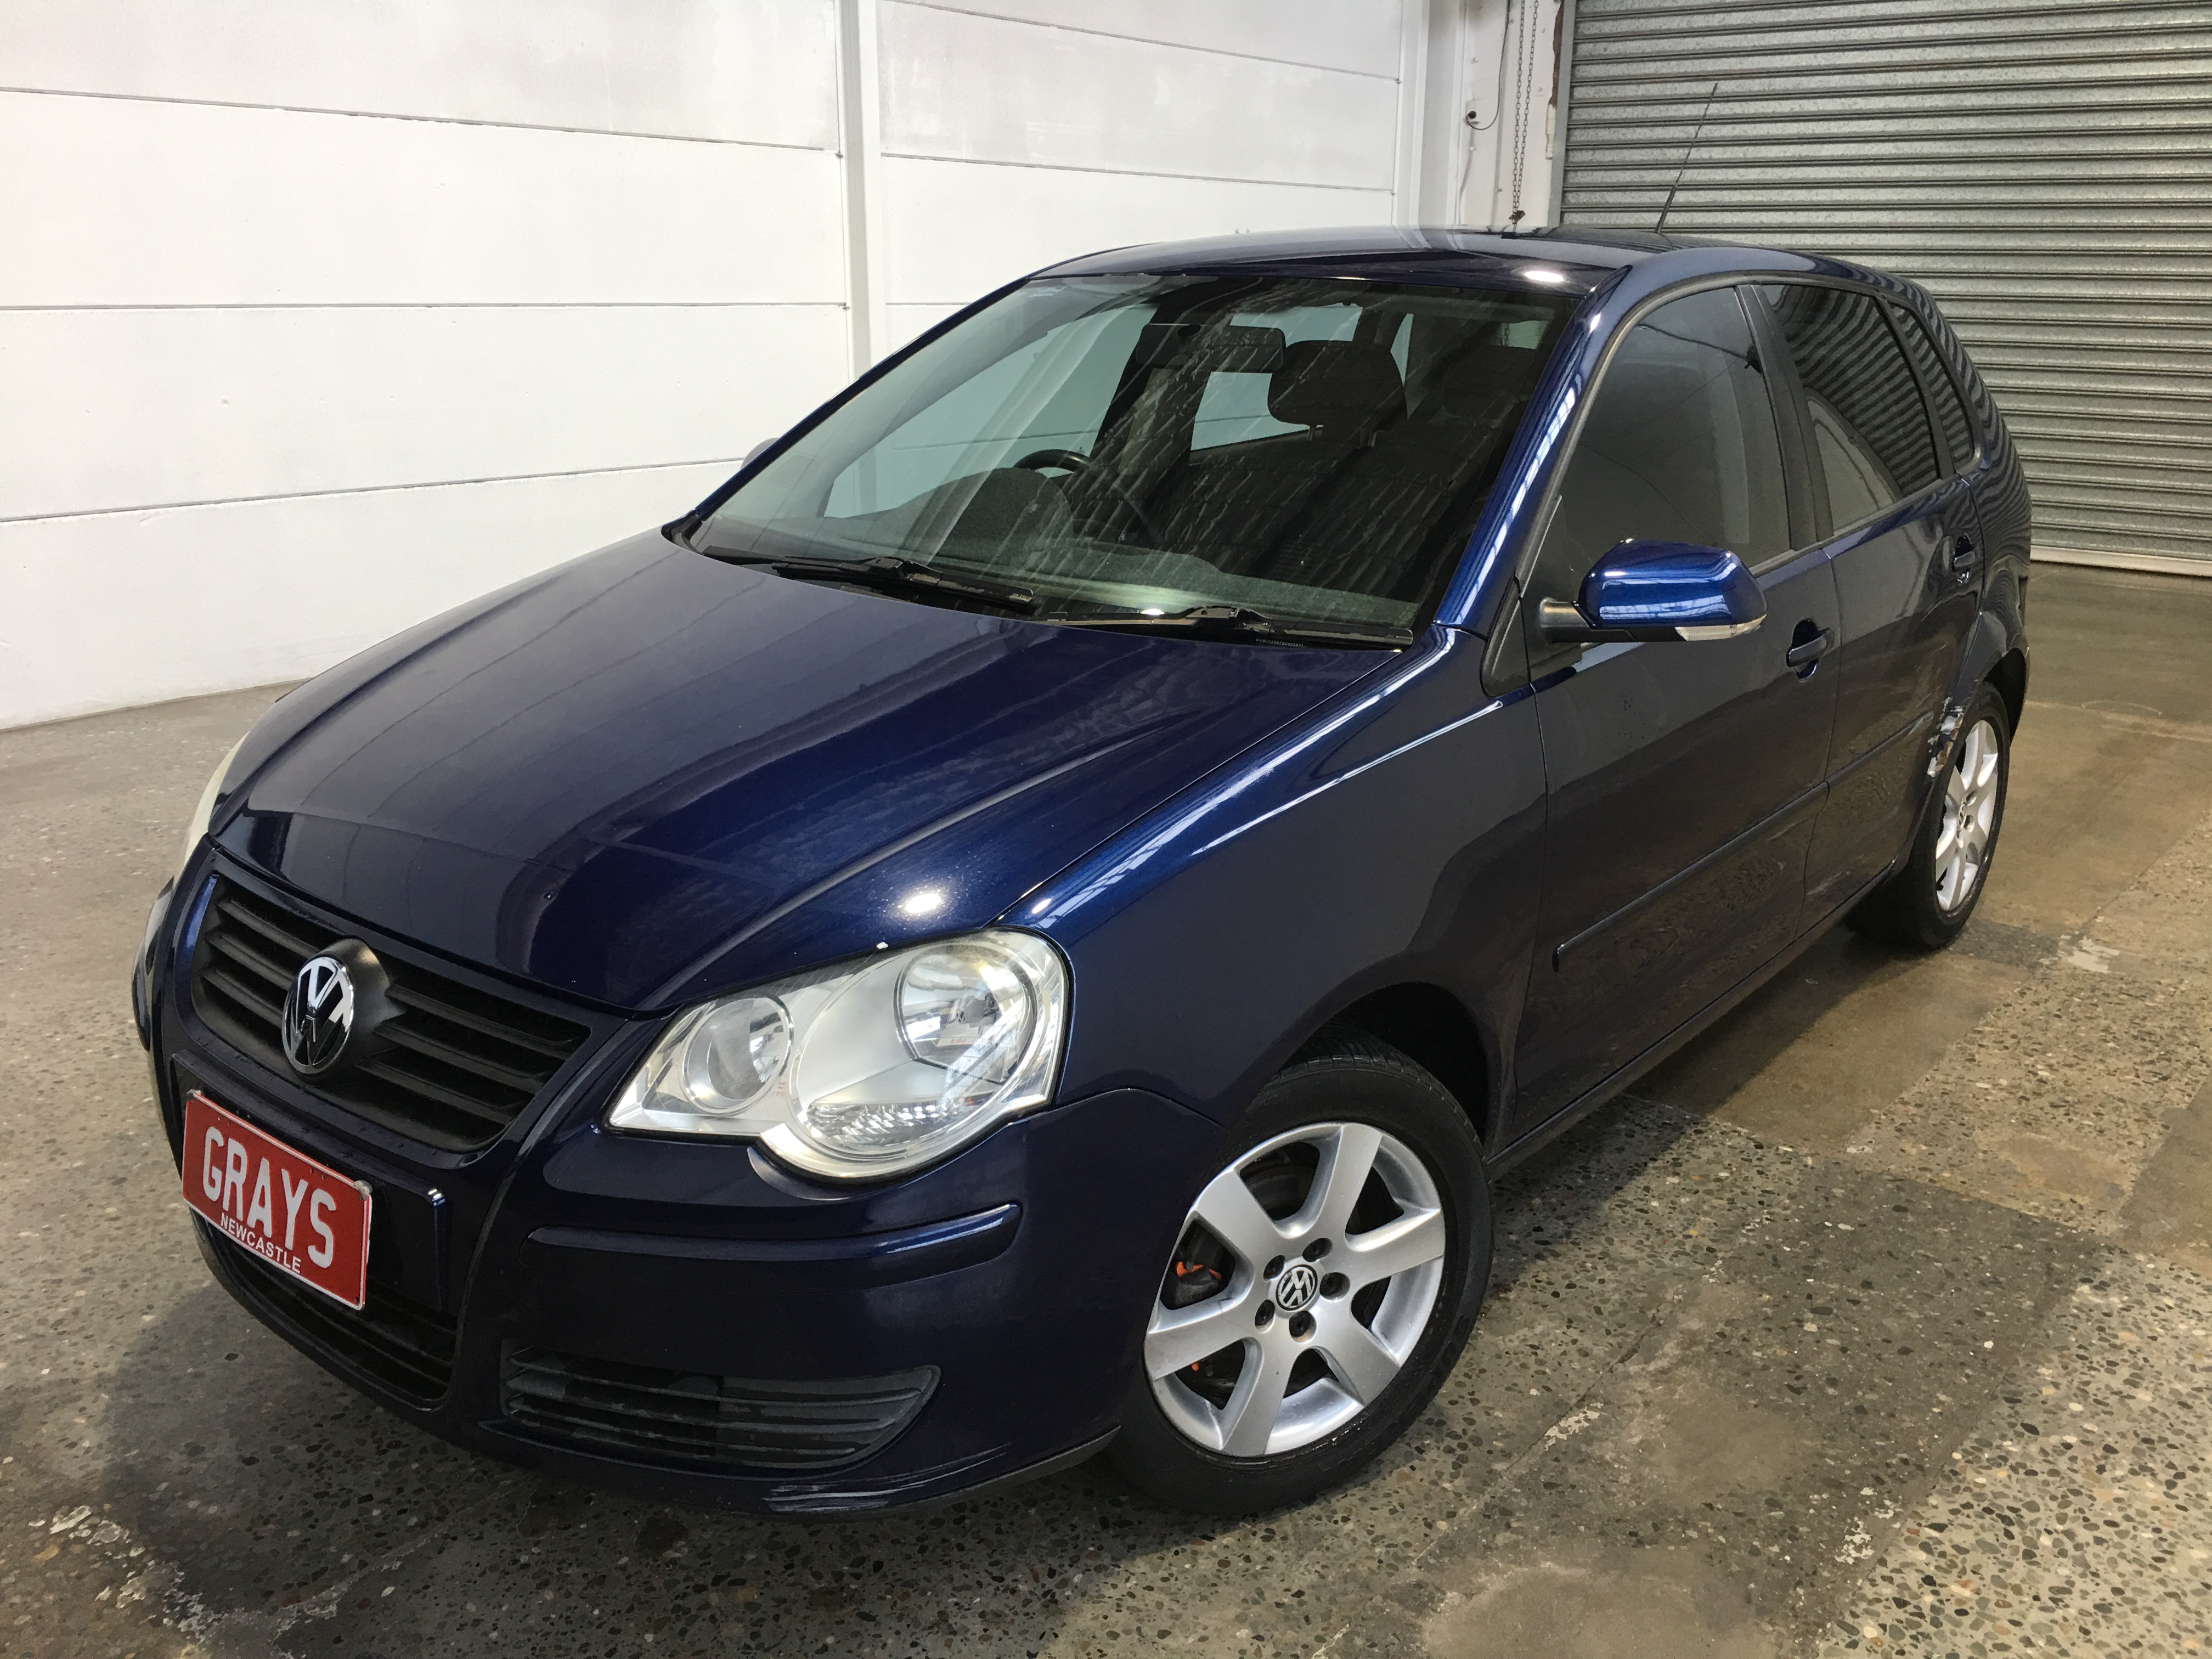 2008 Volkswagen Polo PACIFIC 9N Automatic Hatchback